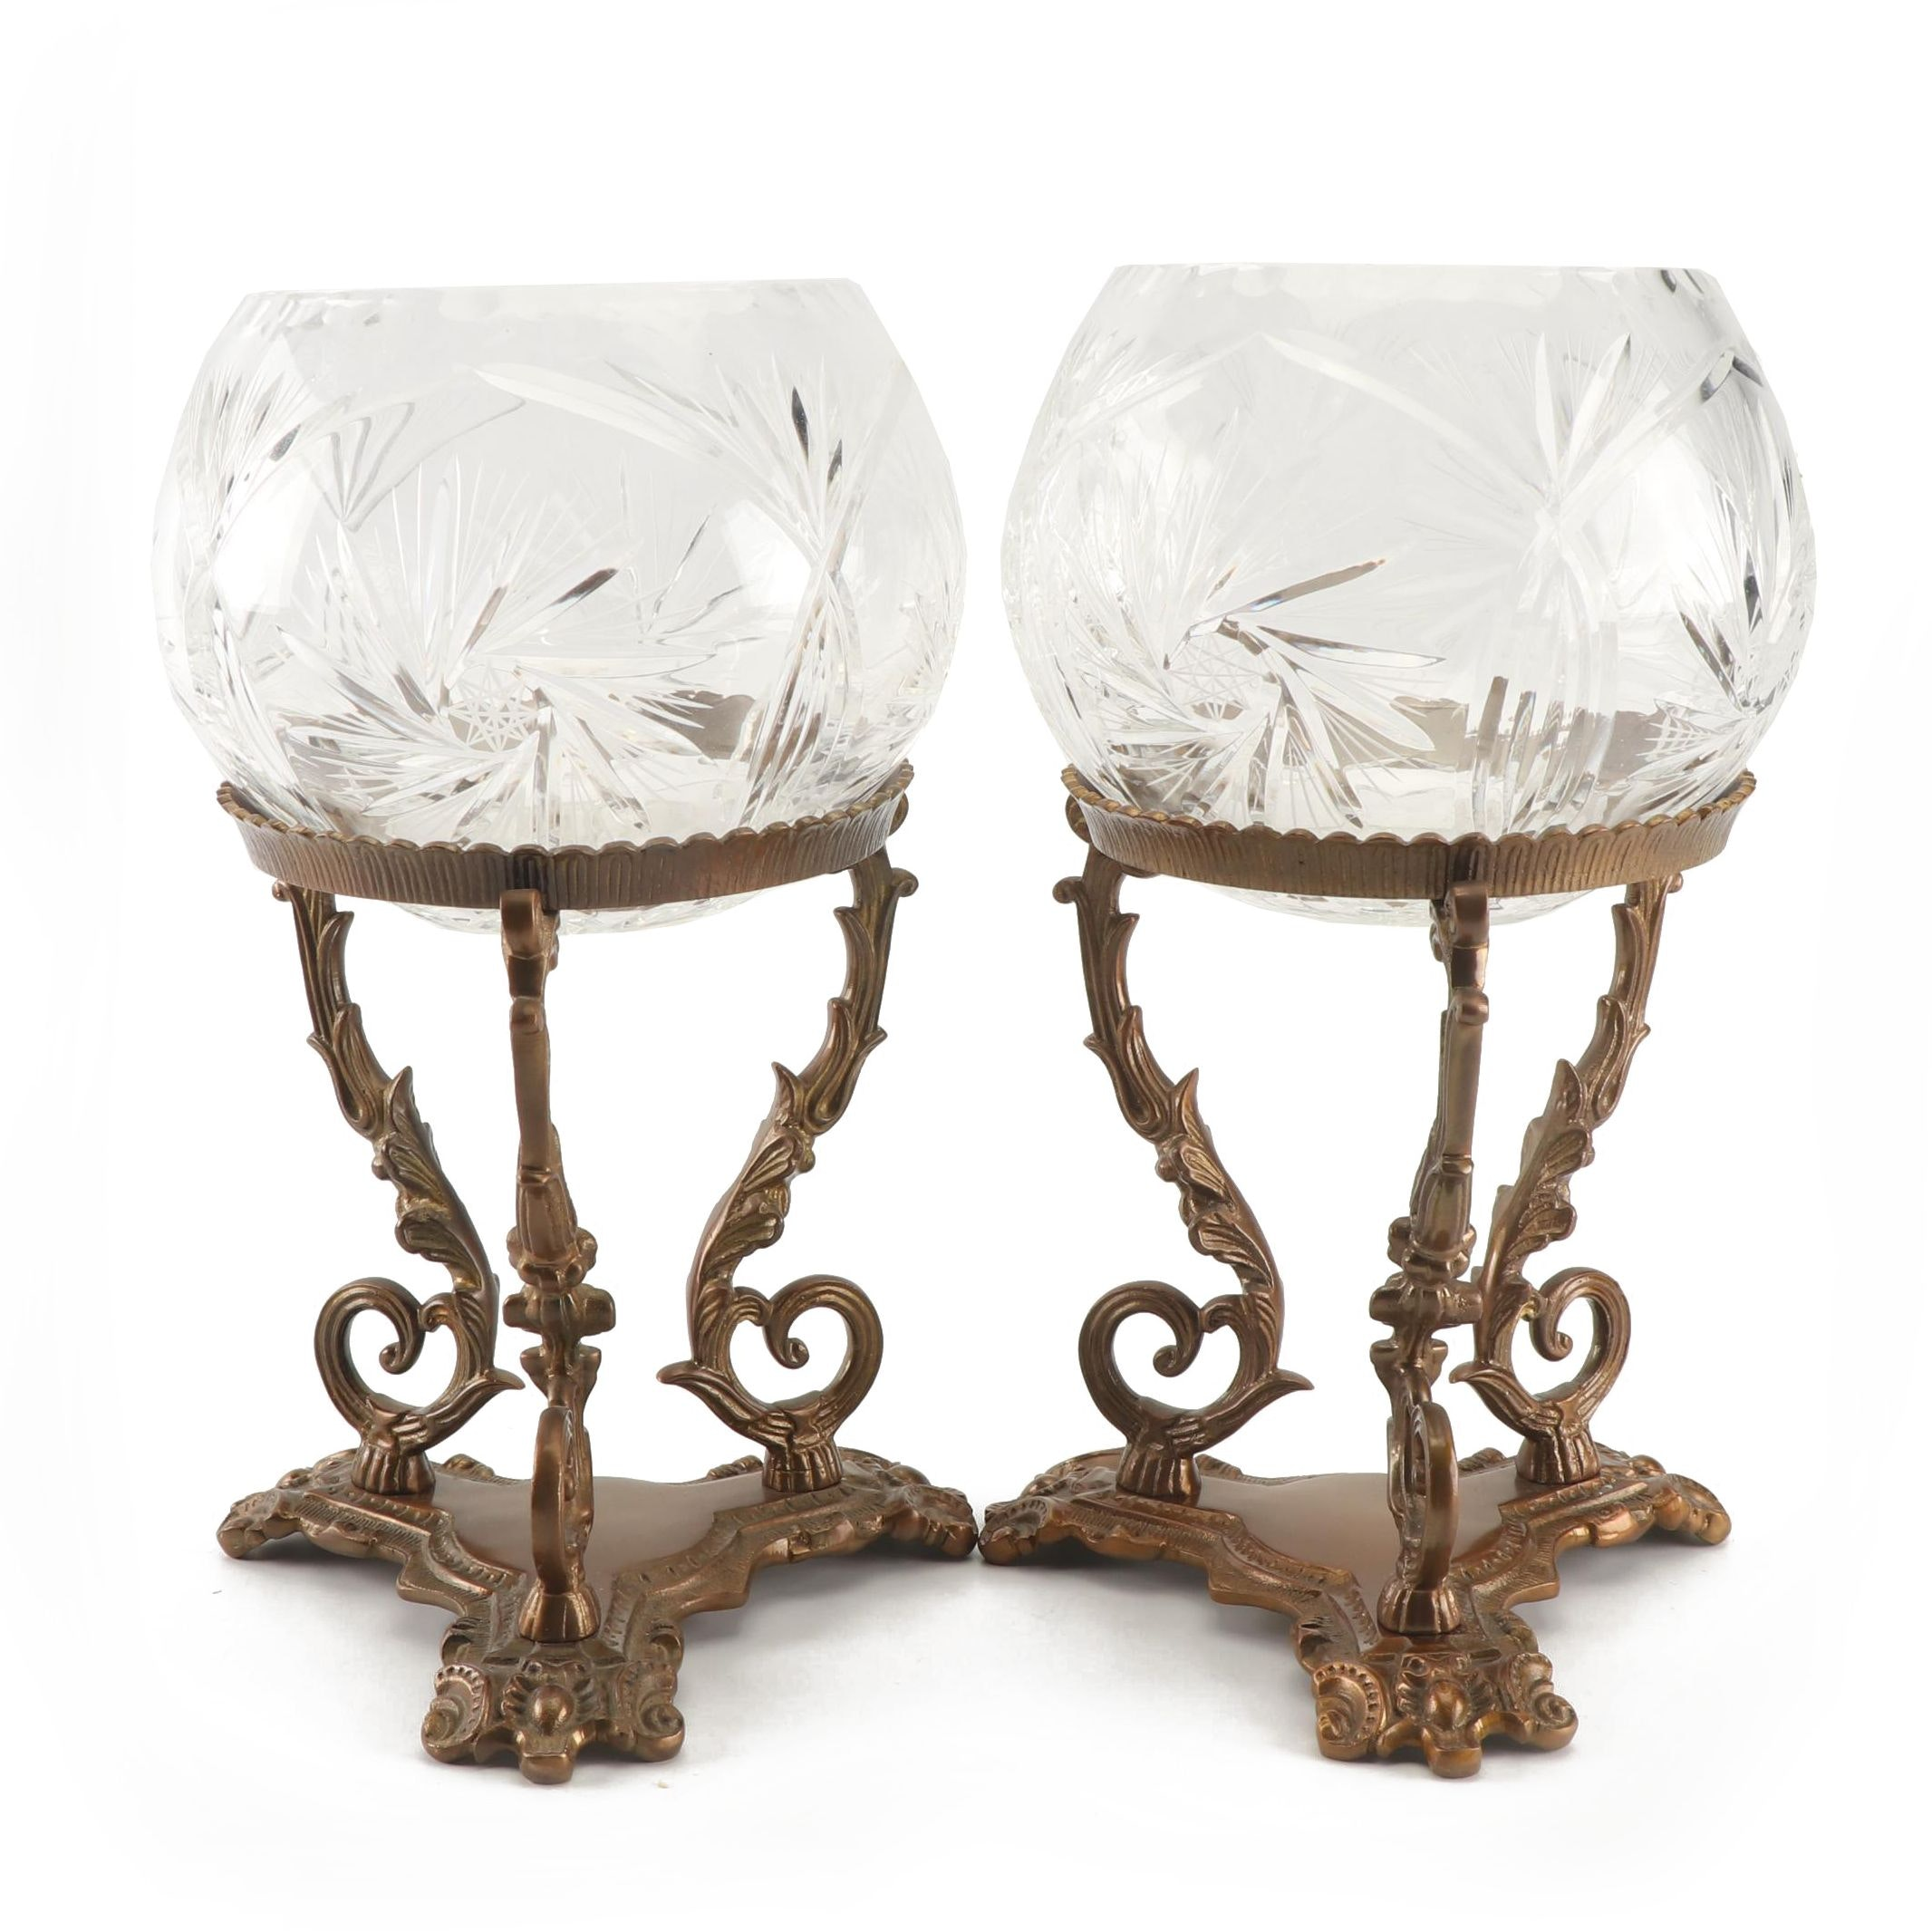 Pair of Brass Stands with Crystal Rose Bowls